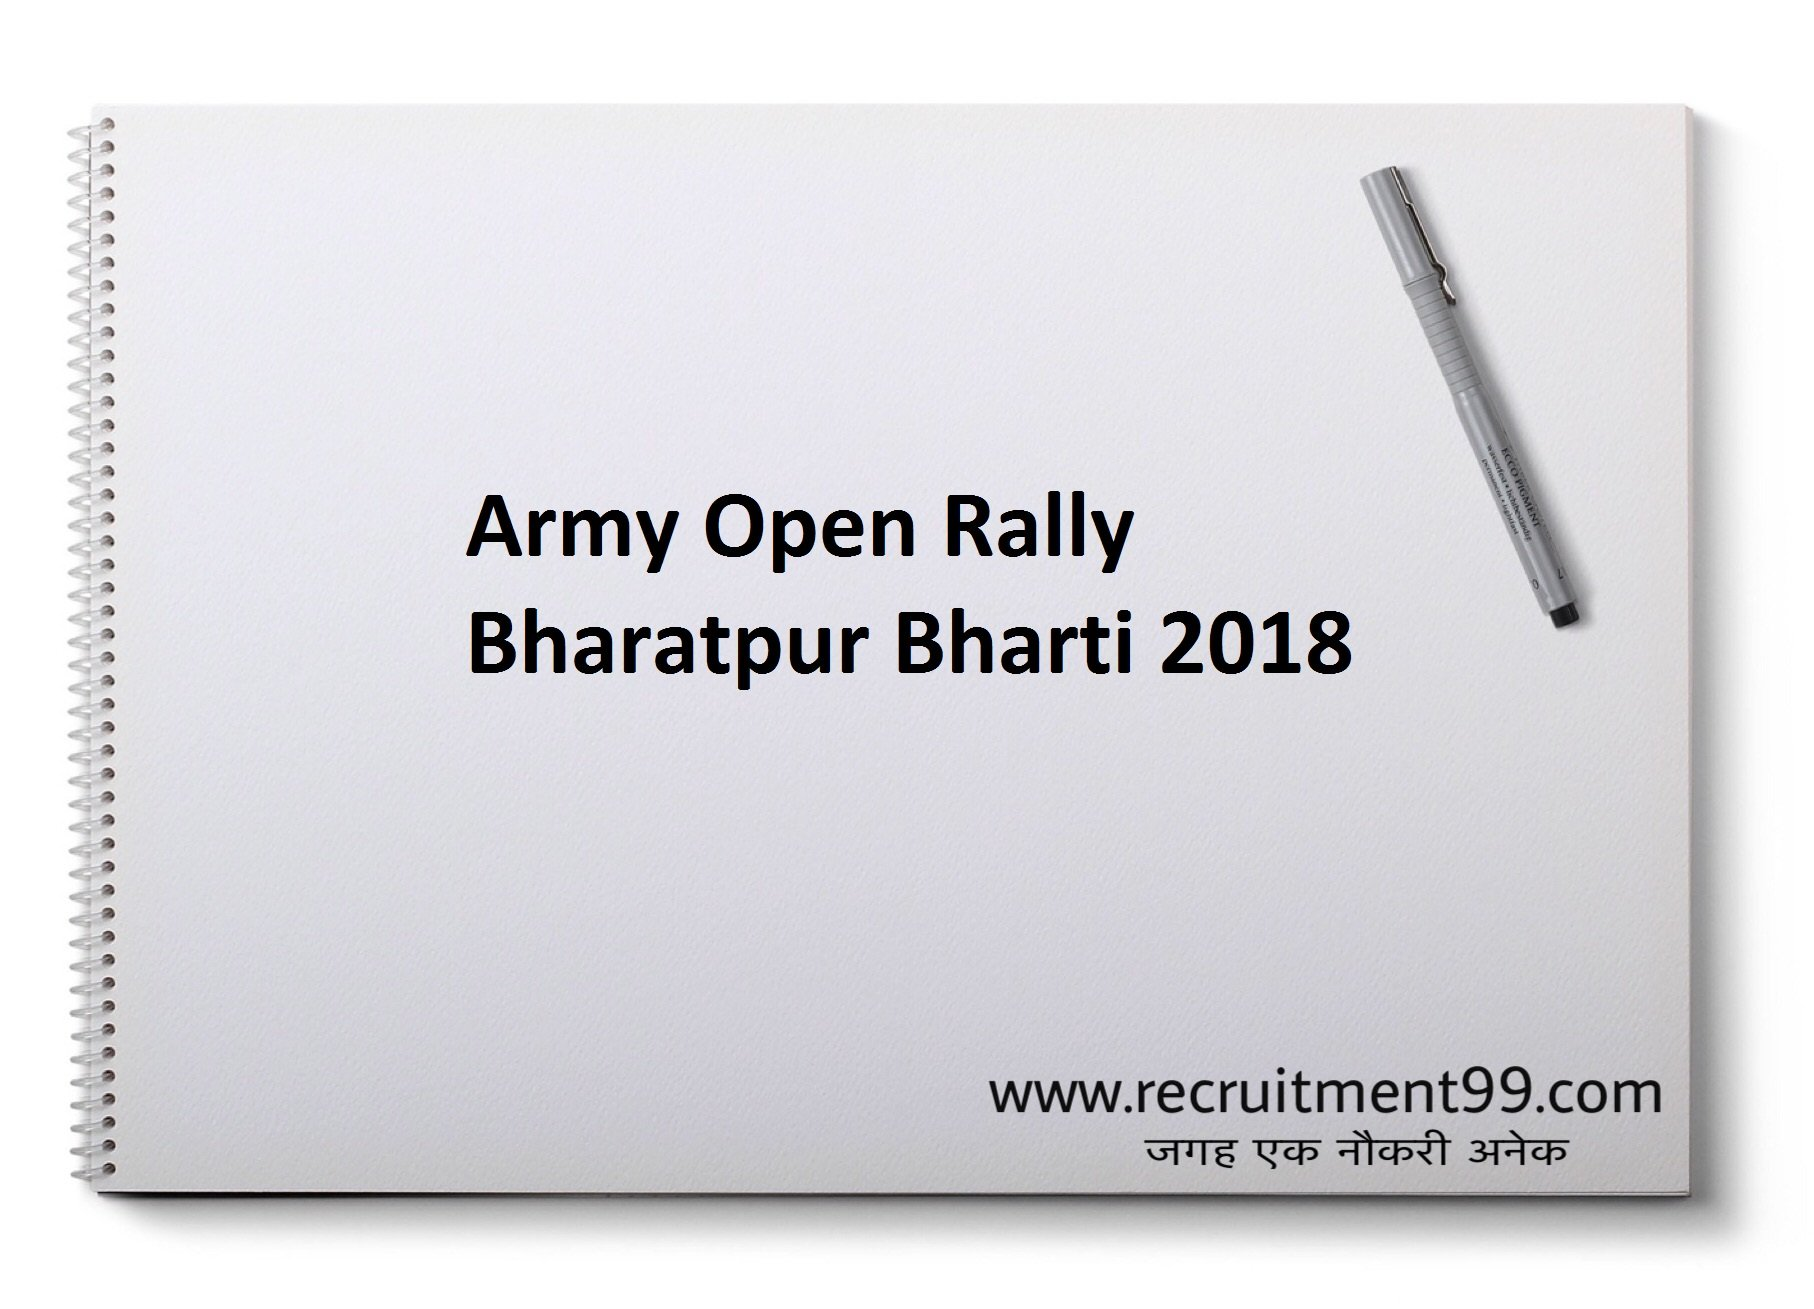 Army Open Rally Bharatpur Bharti Admit Card Result 2018